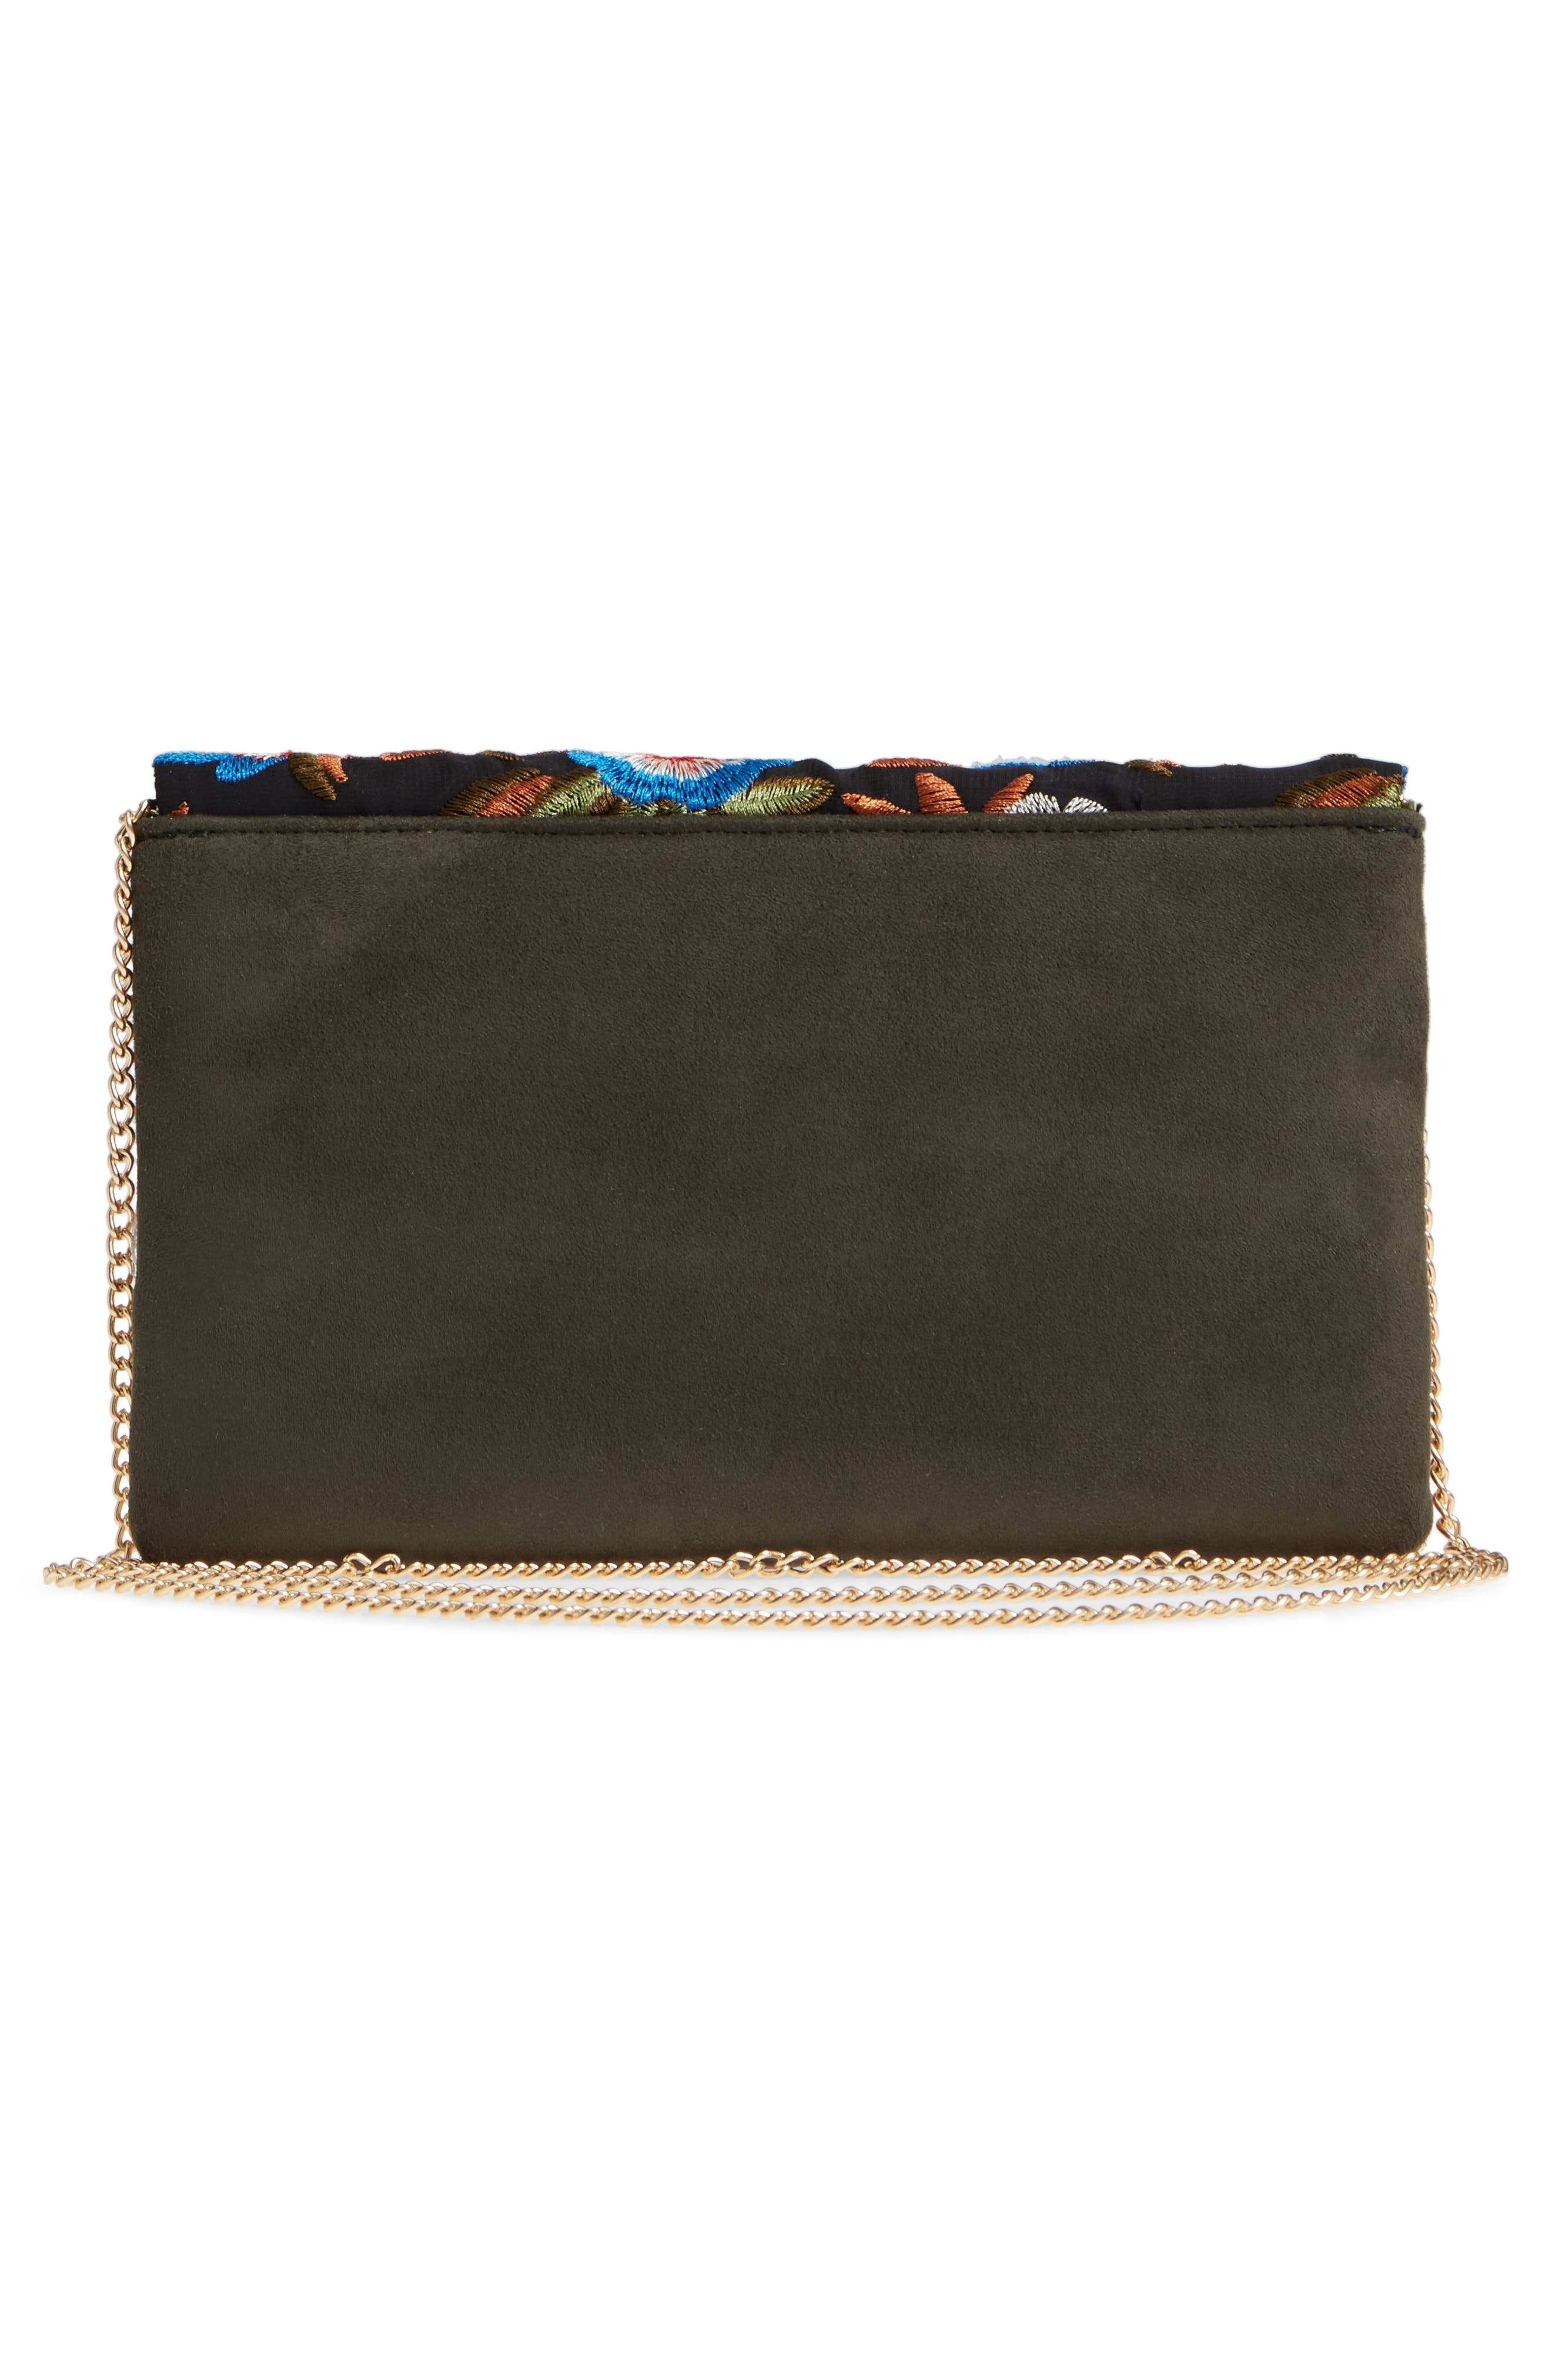 Embroidered Envelope Clutch,                             Alternate thumbnail 3, color,                             461